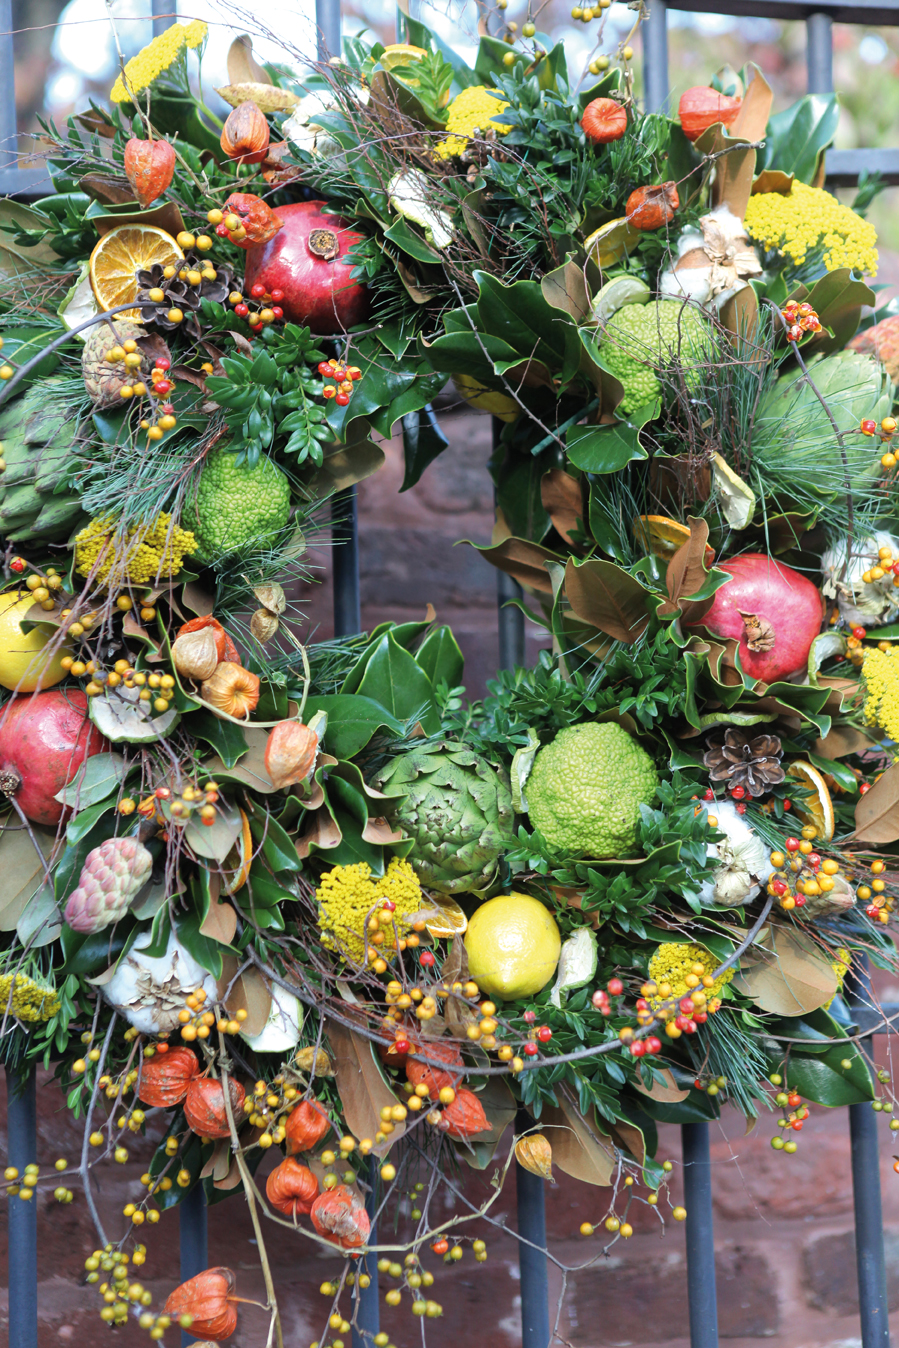 Wreathed in Seasonal Splendor: Create Your Own Wreath with Nature's Treasures